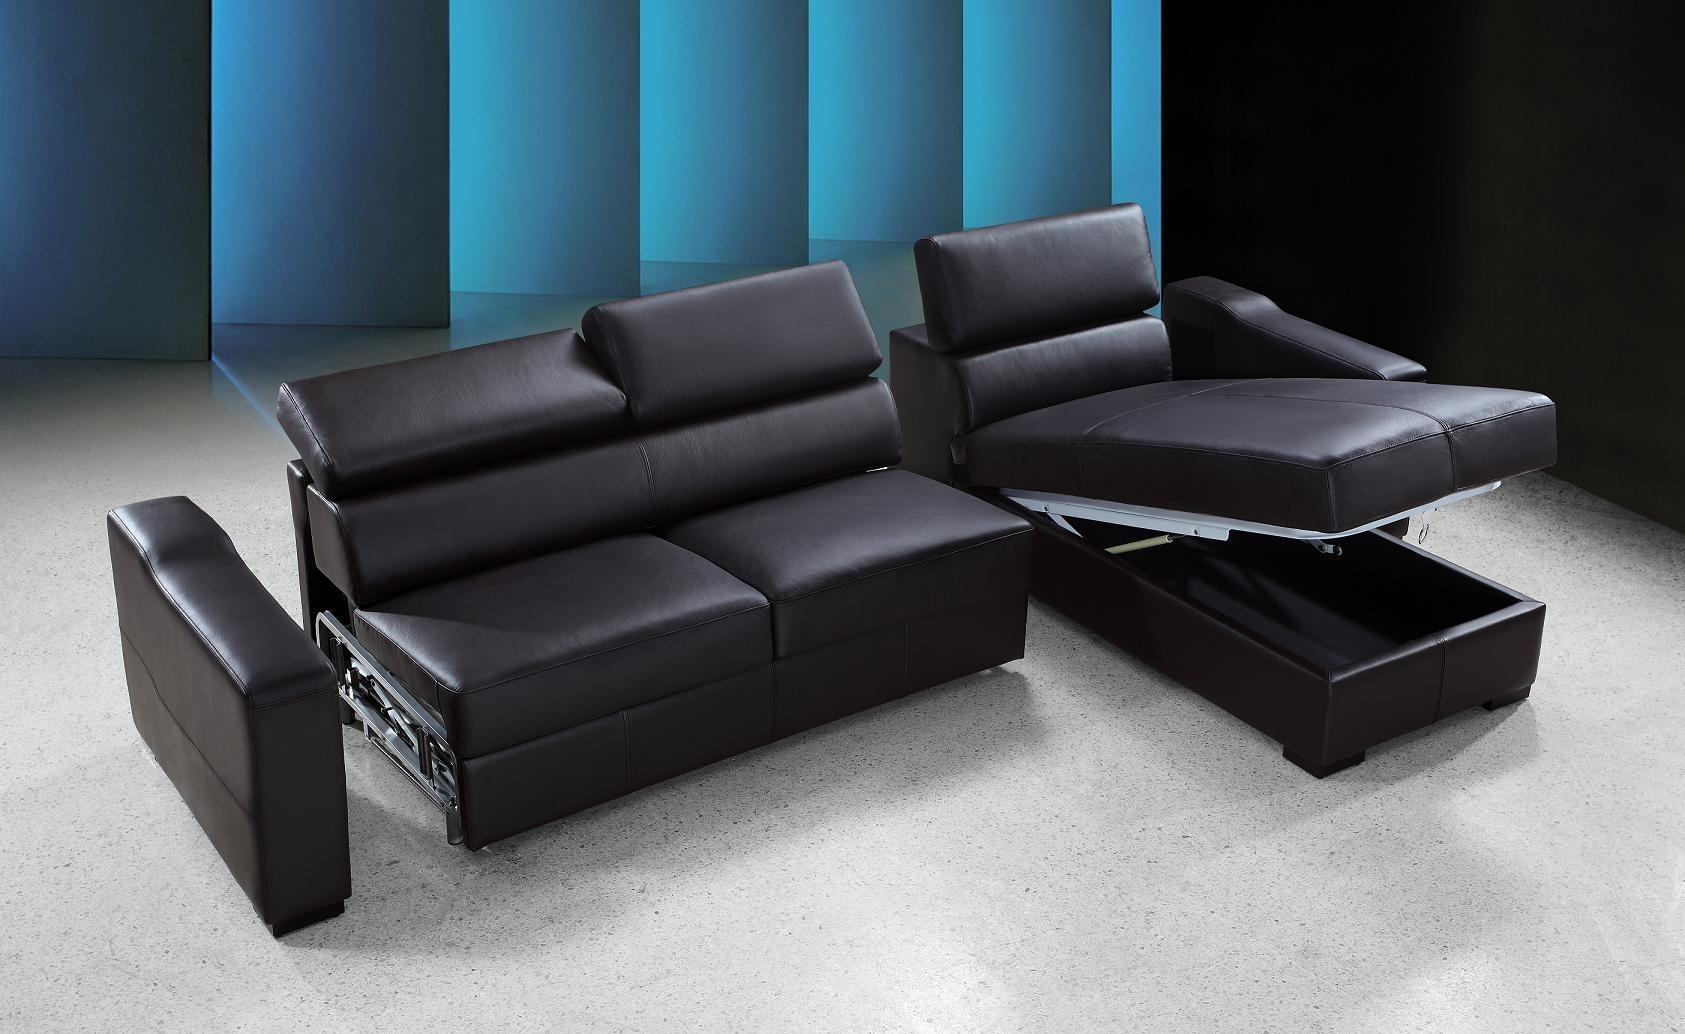 Flip Reversible Espresso Leather Sectional Sofa Bed W/ Storage With Sectional Sofa Bed With Storage (View 2 of 20)